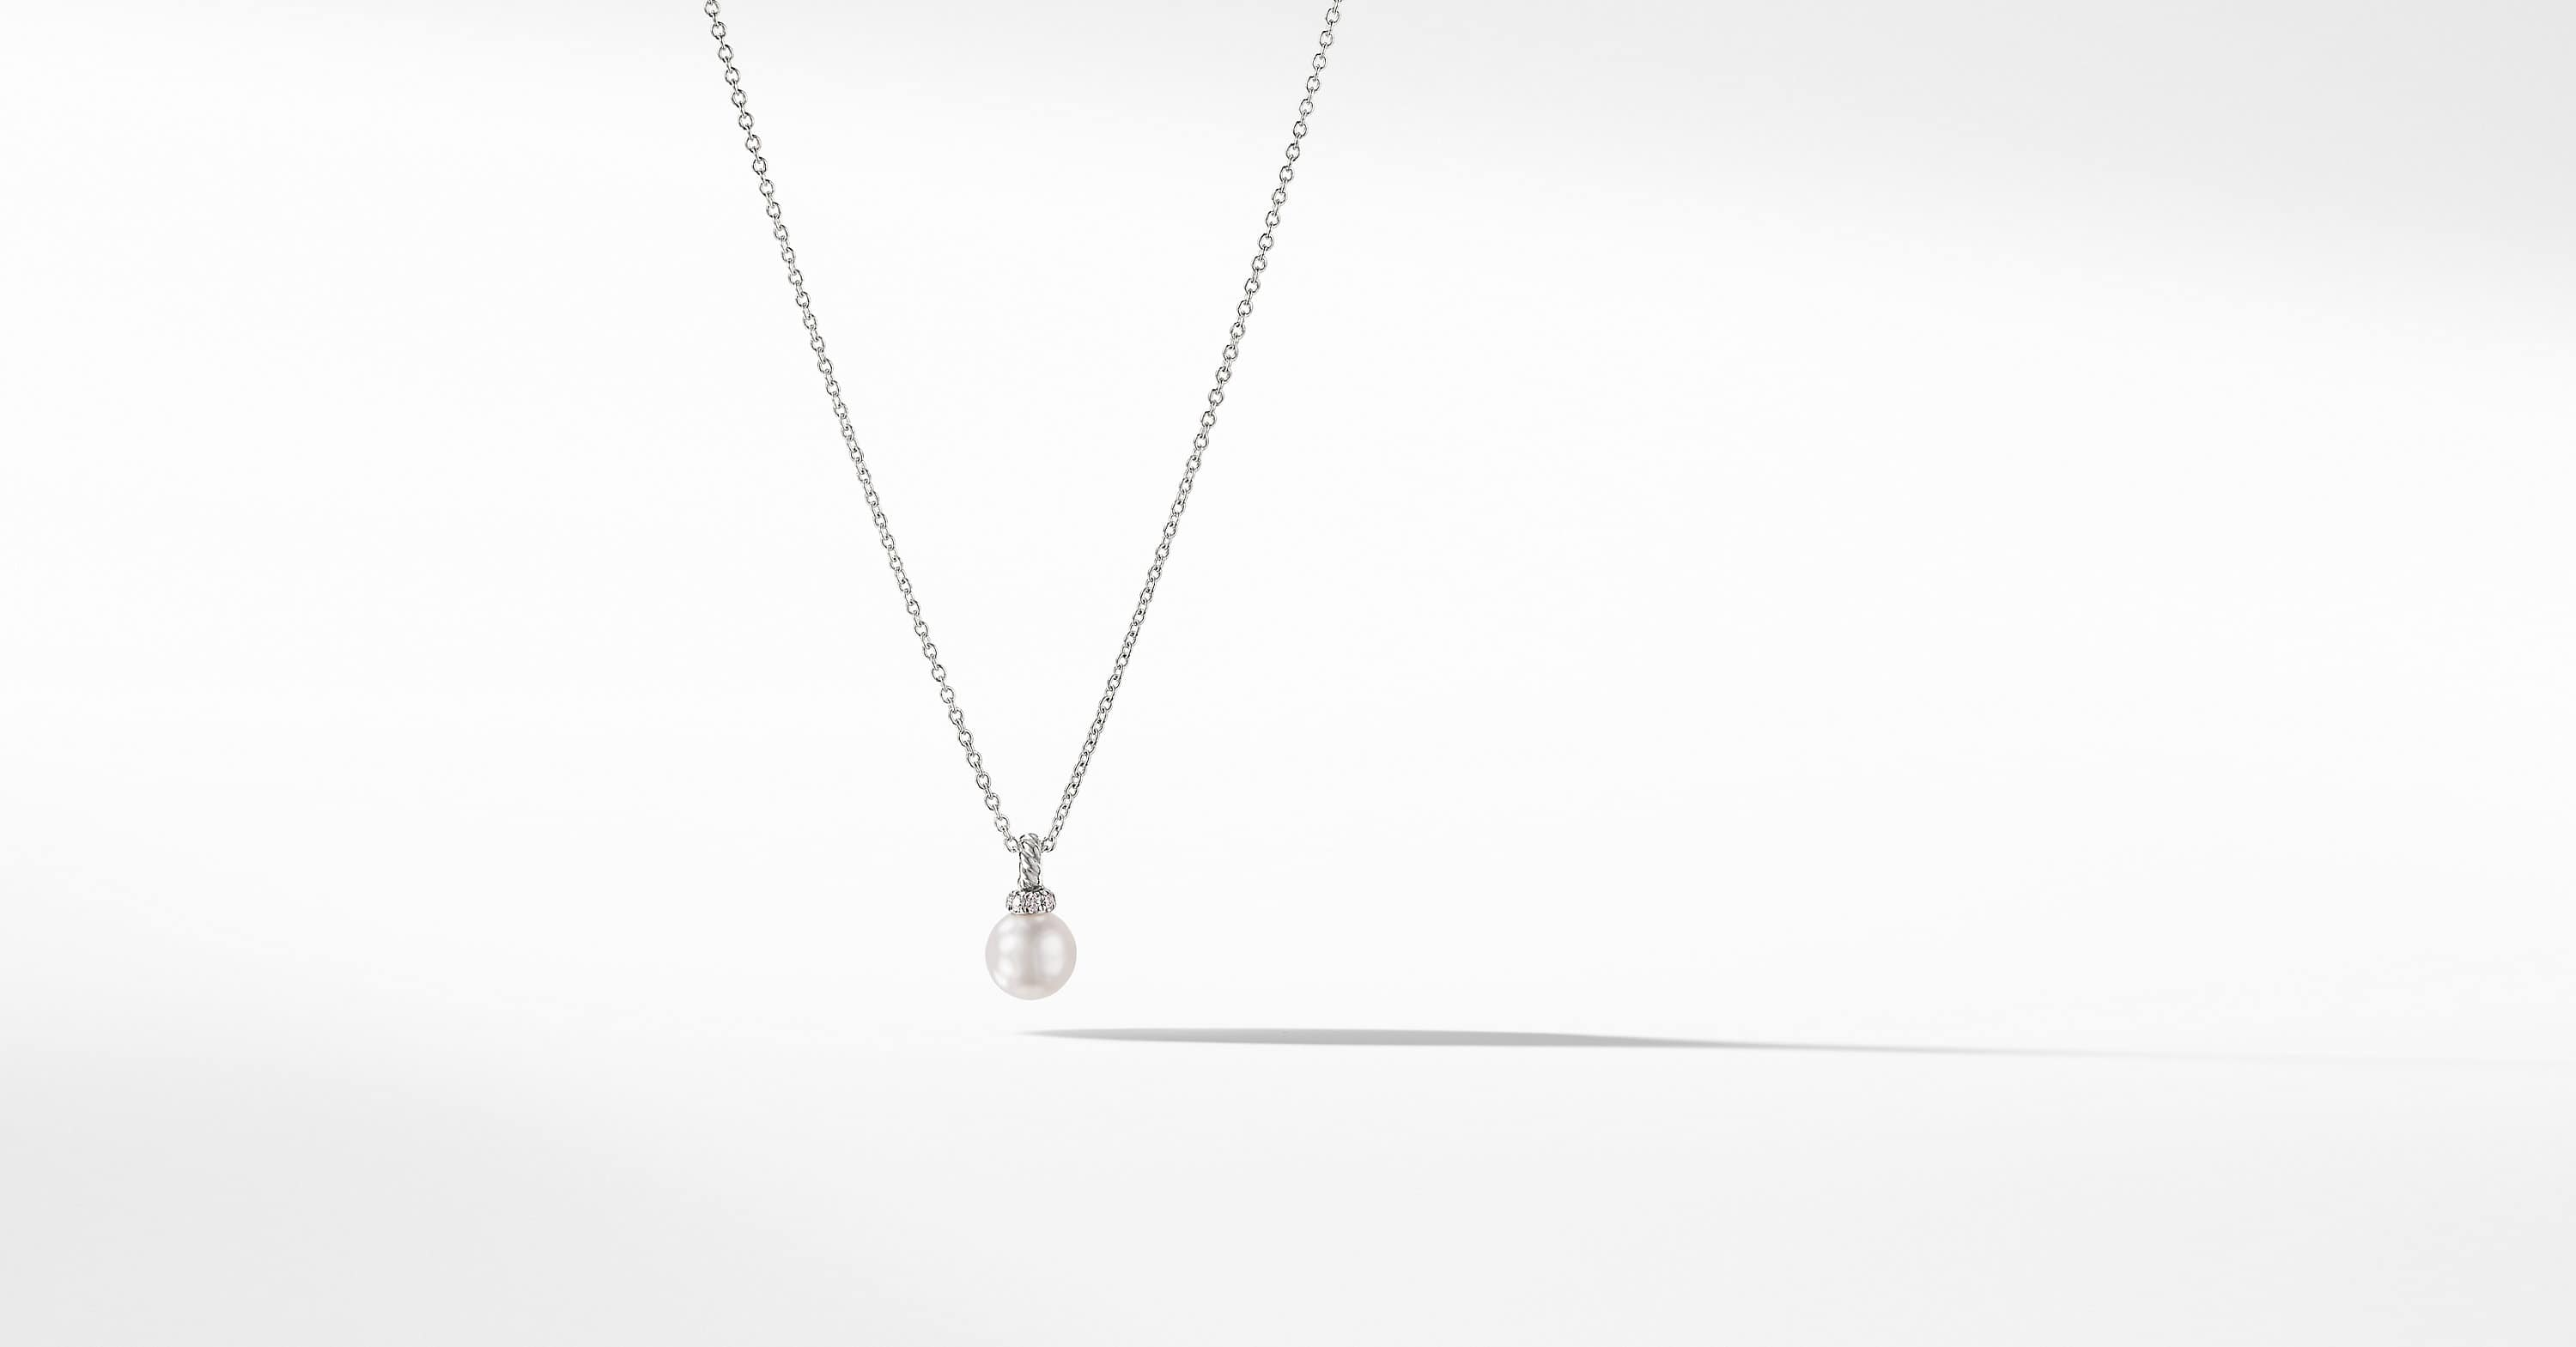 Solari Pendant Necklace with Diamonds in 18K White Gold